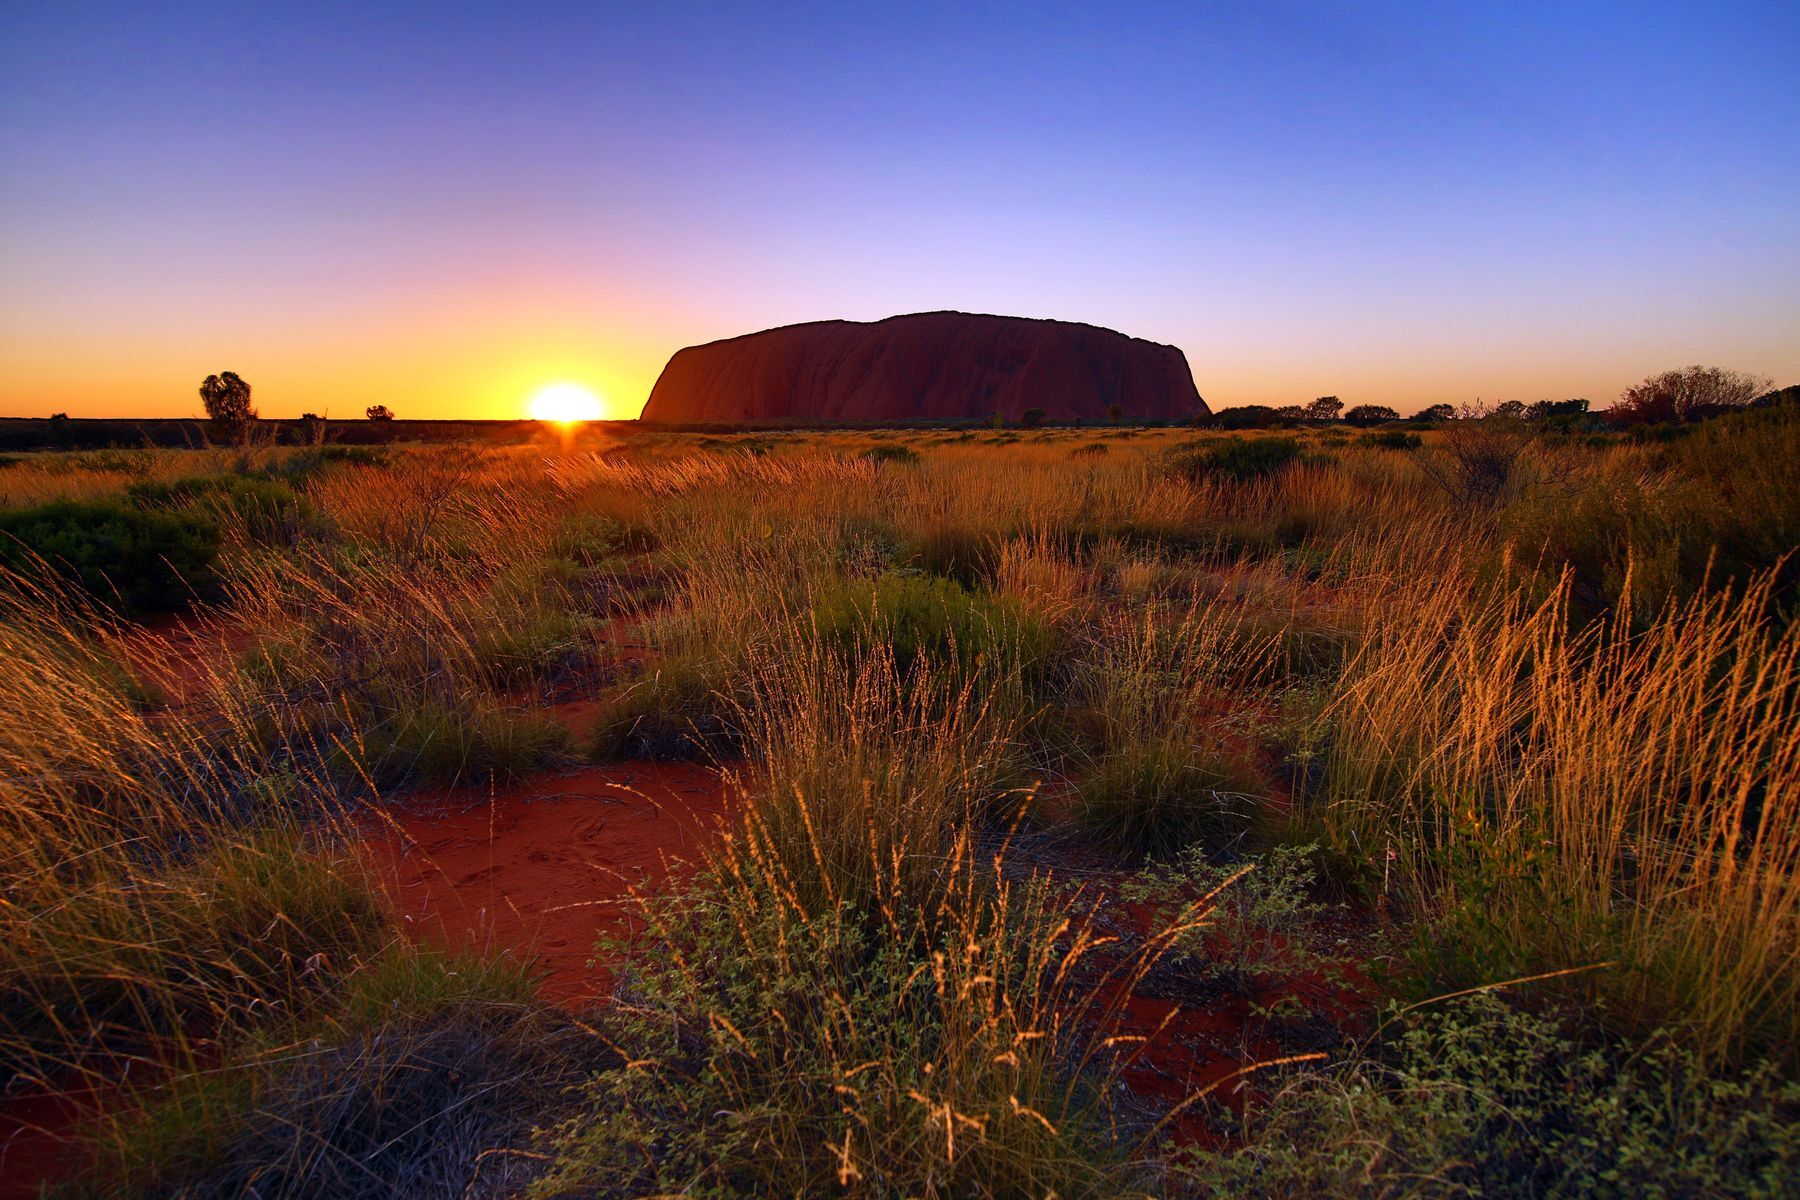 Slide 20 of 31: The majestic red-rock formations in this park are particularly impressive at sunrise and sunset. They can be admired from various viewpoints at these times. This is a sacred site for the region's Indigenous population, the Anangu, who manage the park in partnership with the state. Visitors can see rock art dating back tens of thousands of years, testament to Anangu ancestral education.